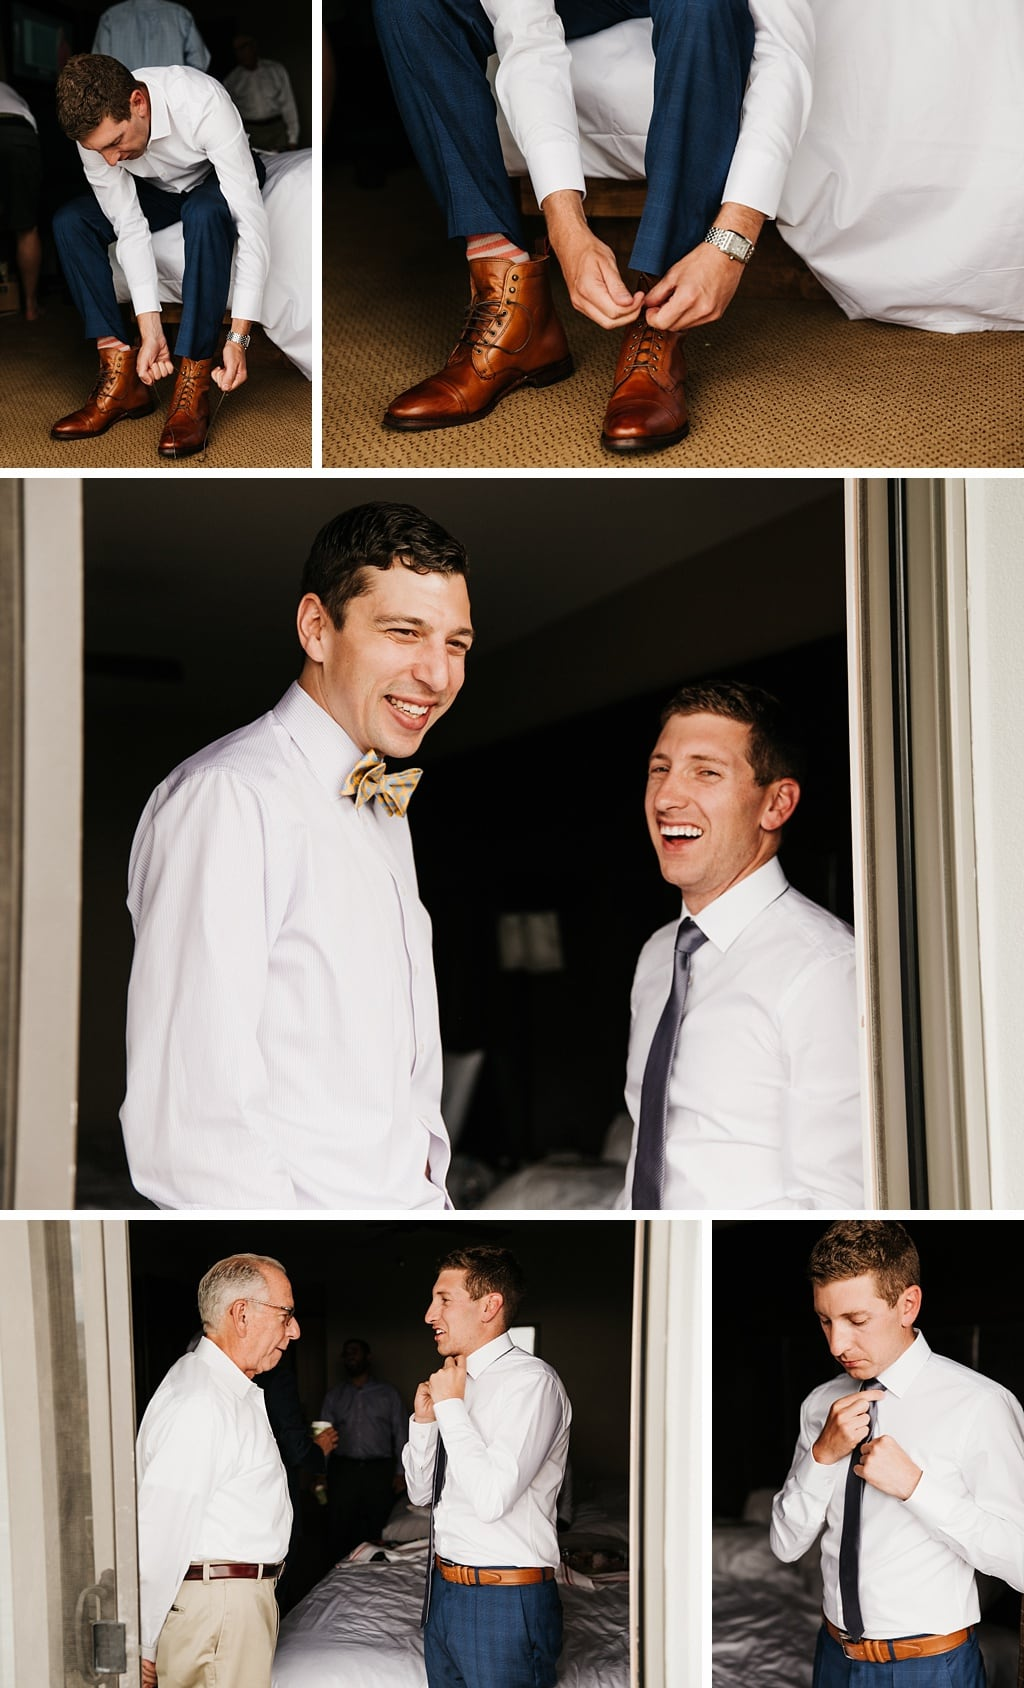 Telluride The Peaks Resort and Spa Groom's Details Shoes Tie Watch Boutonniere Getting Ready